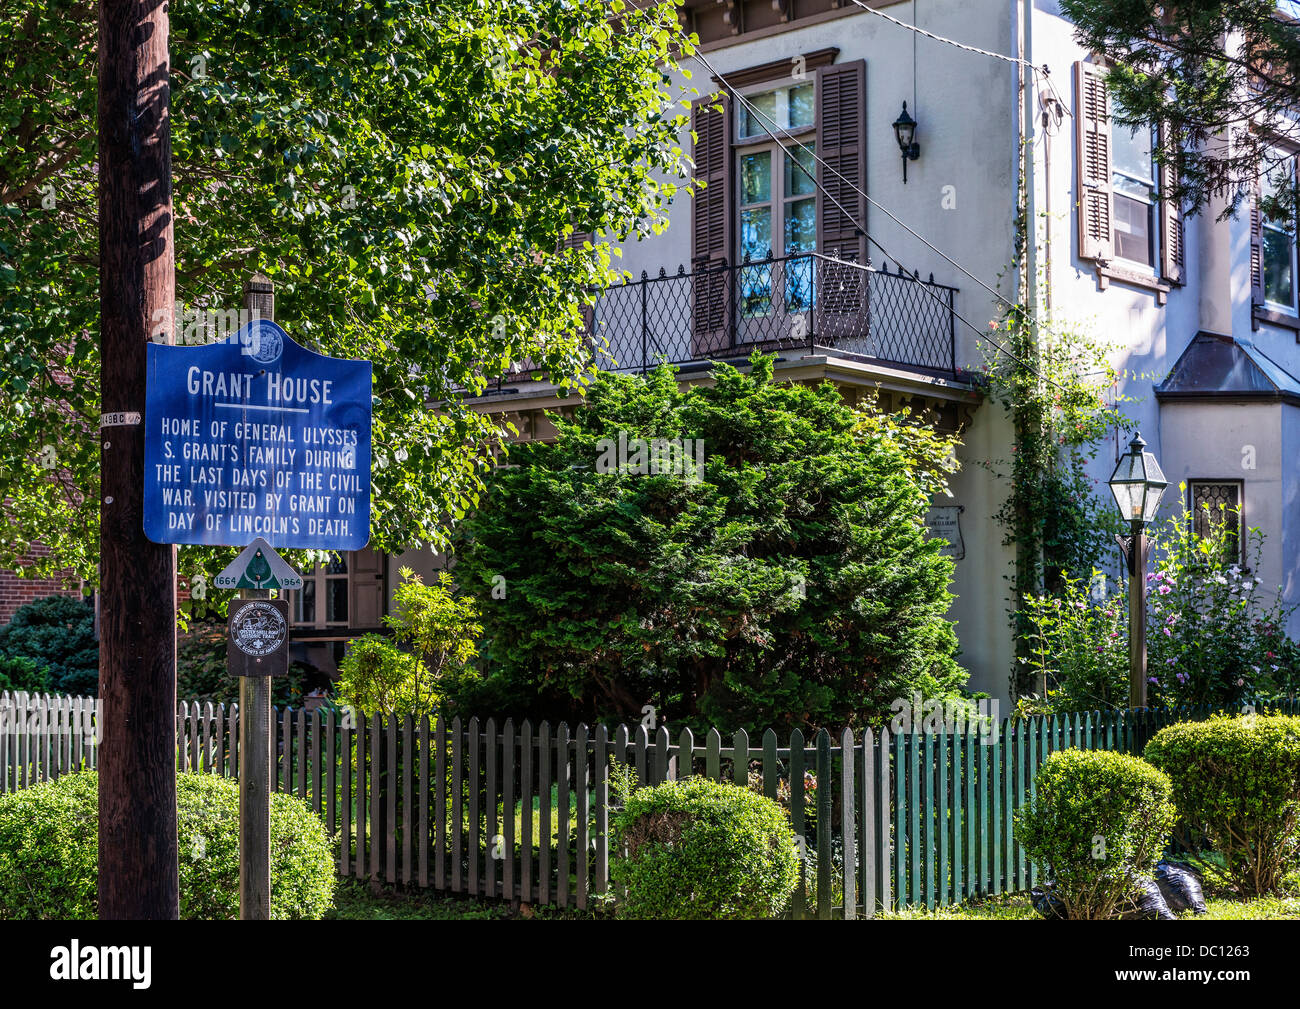 General Ulysses S Grant house during the Cival War, Burlington, New Jersey, USA - Stock Image